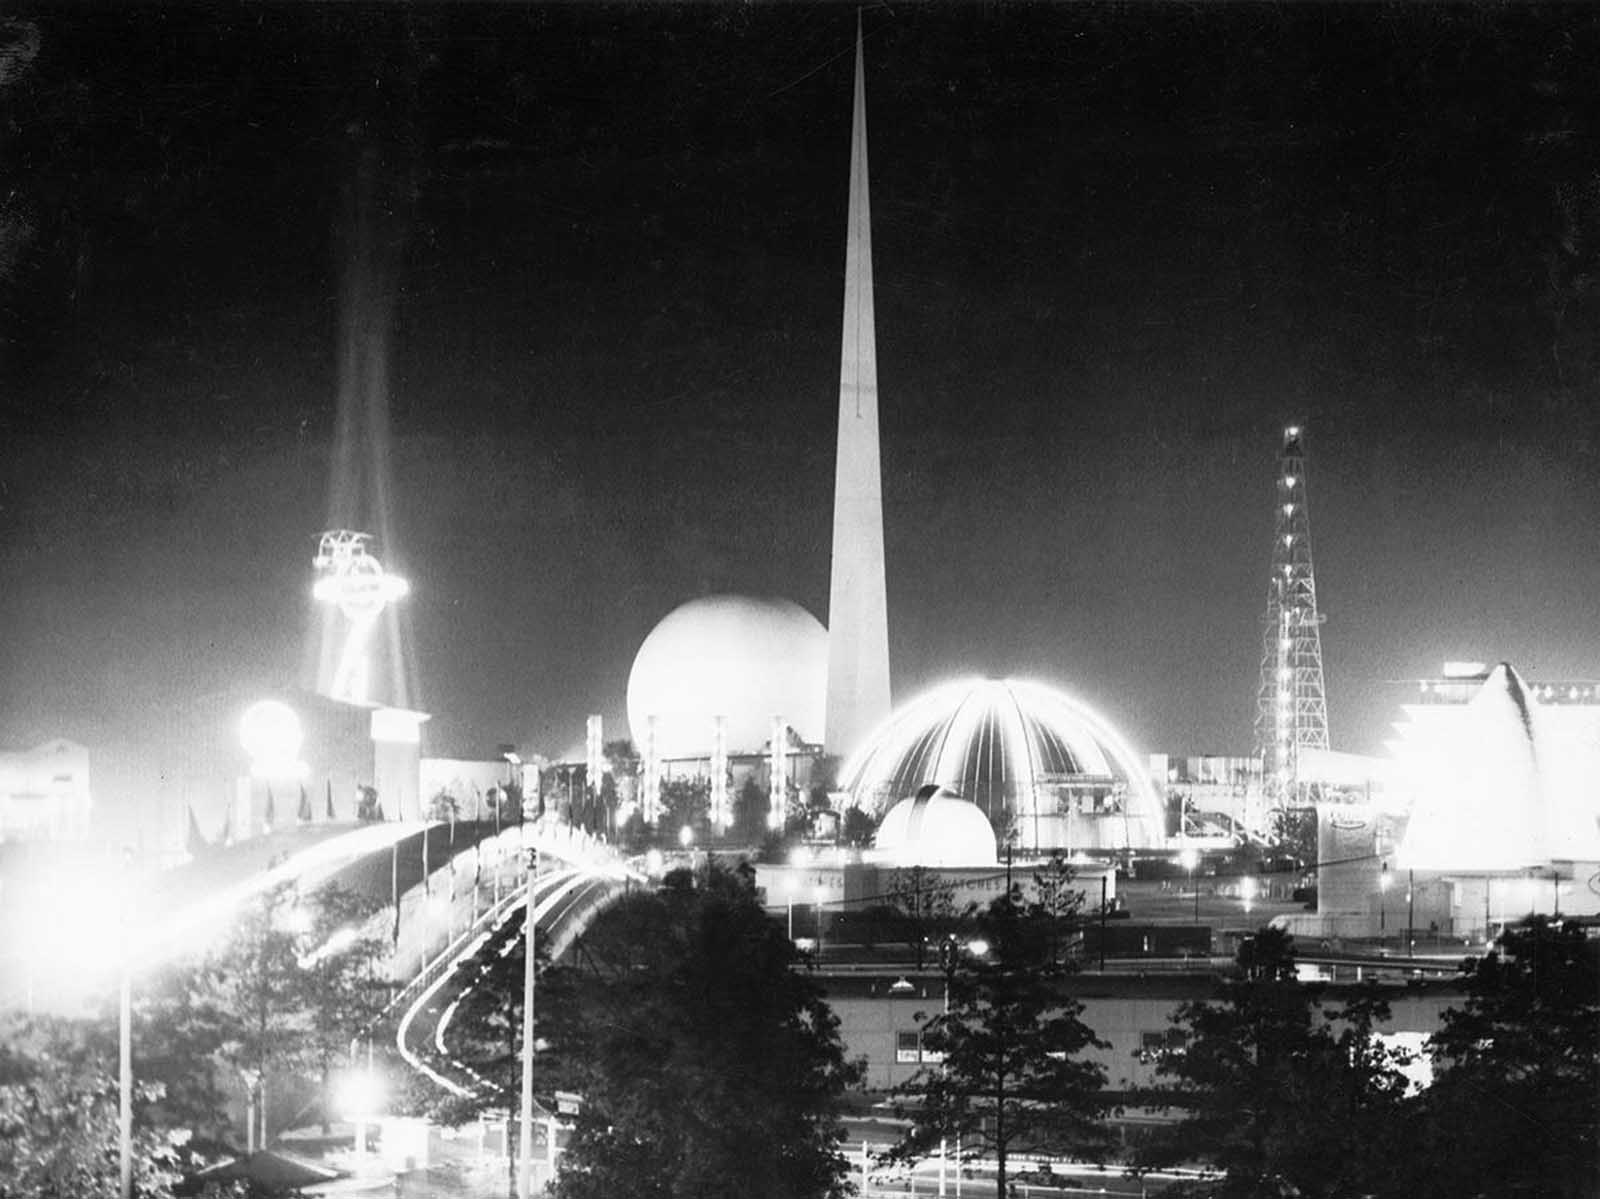 General night view of the World's Fair, New York City, September 15, 1939.